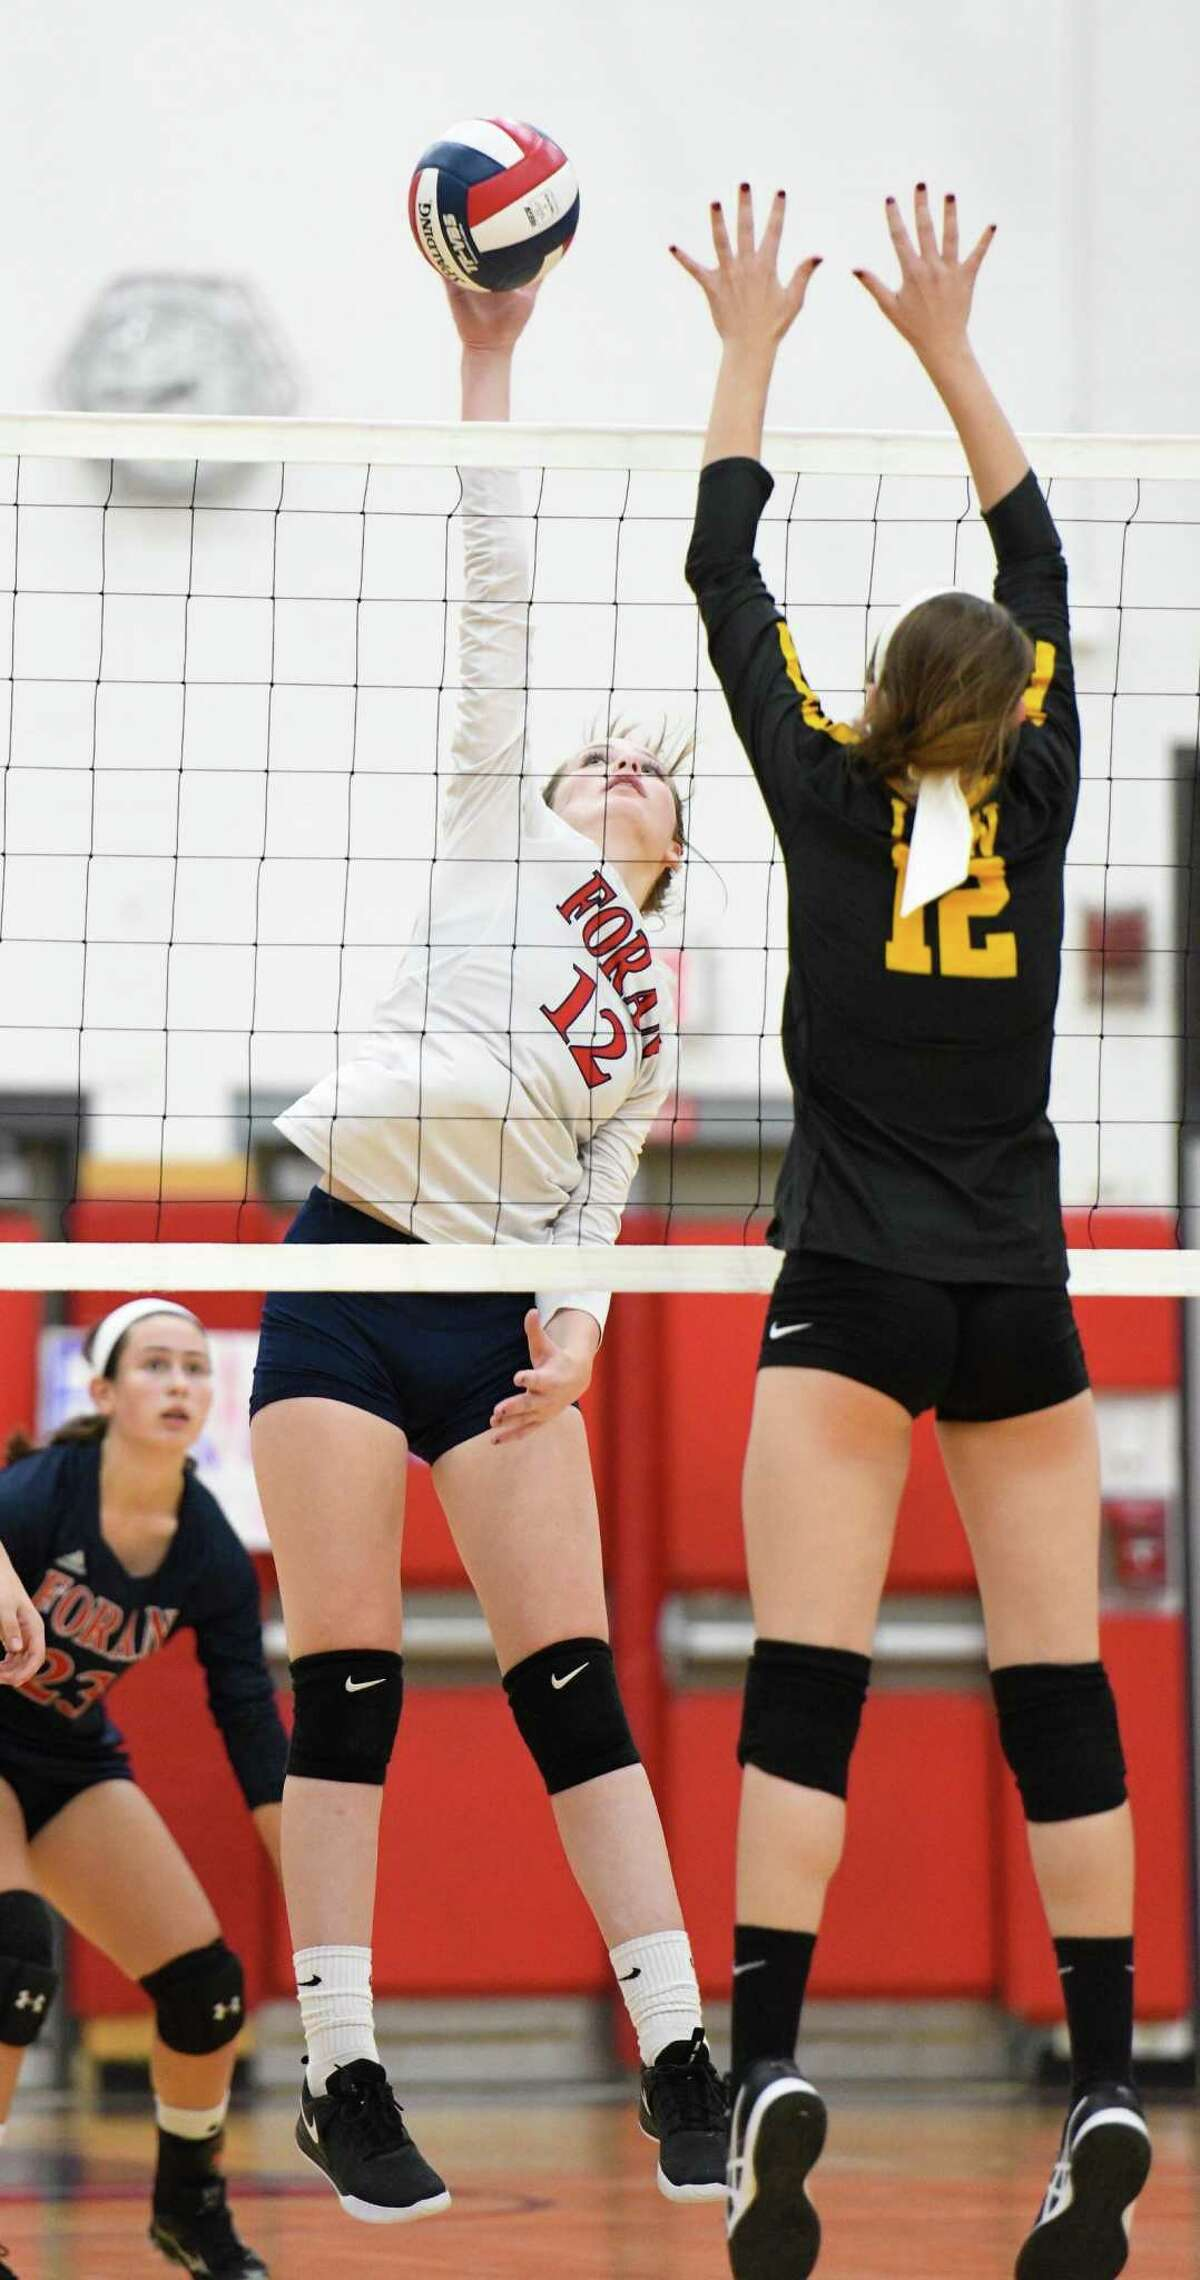 Foran High's Briana Brassell will return to play the middle hitter position for the Lions, who open their season at Stamford High on Sept. 13.